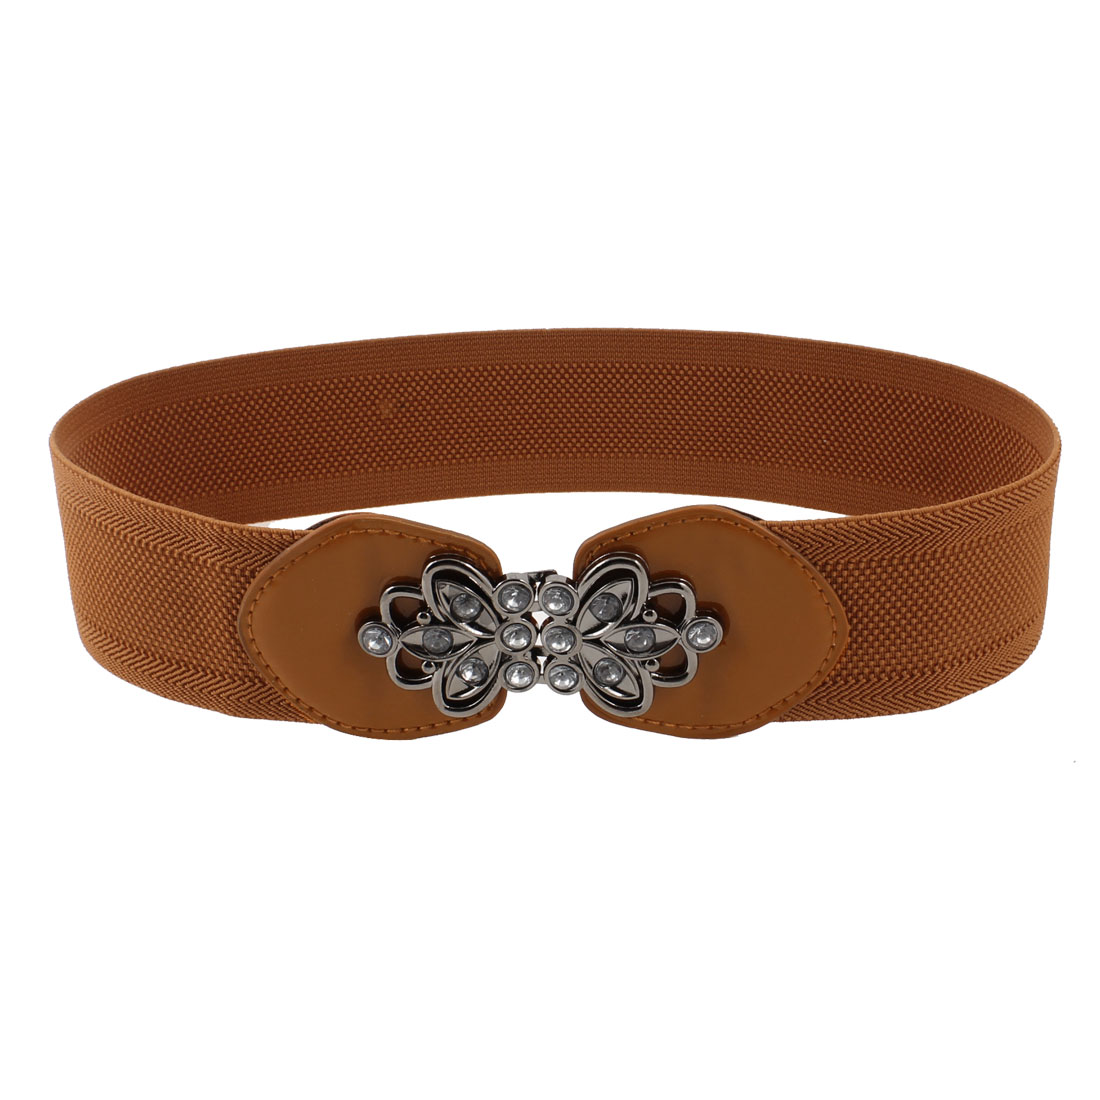 Women Faux Leather Interlocking Buckle Texture Stretchy Cinch Waist Belt Brown